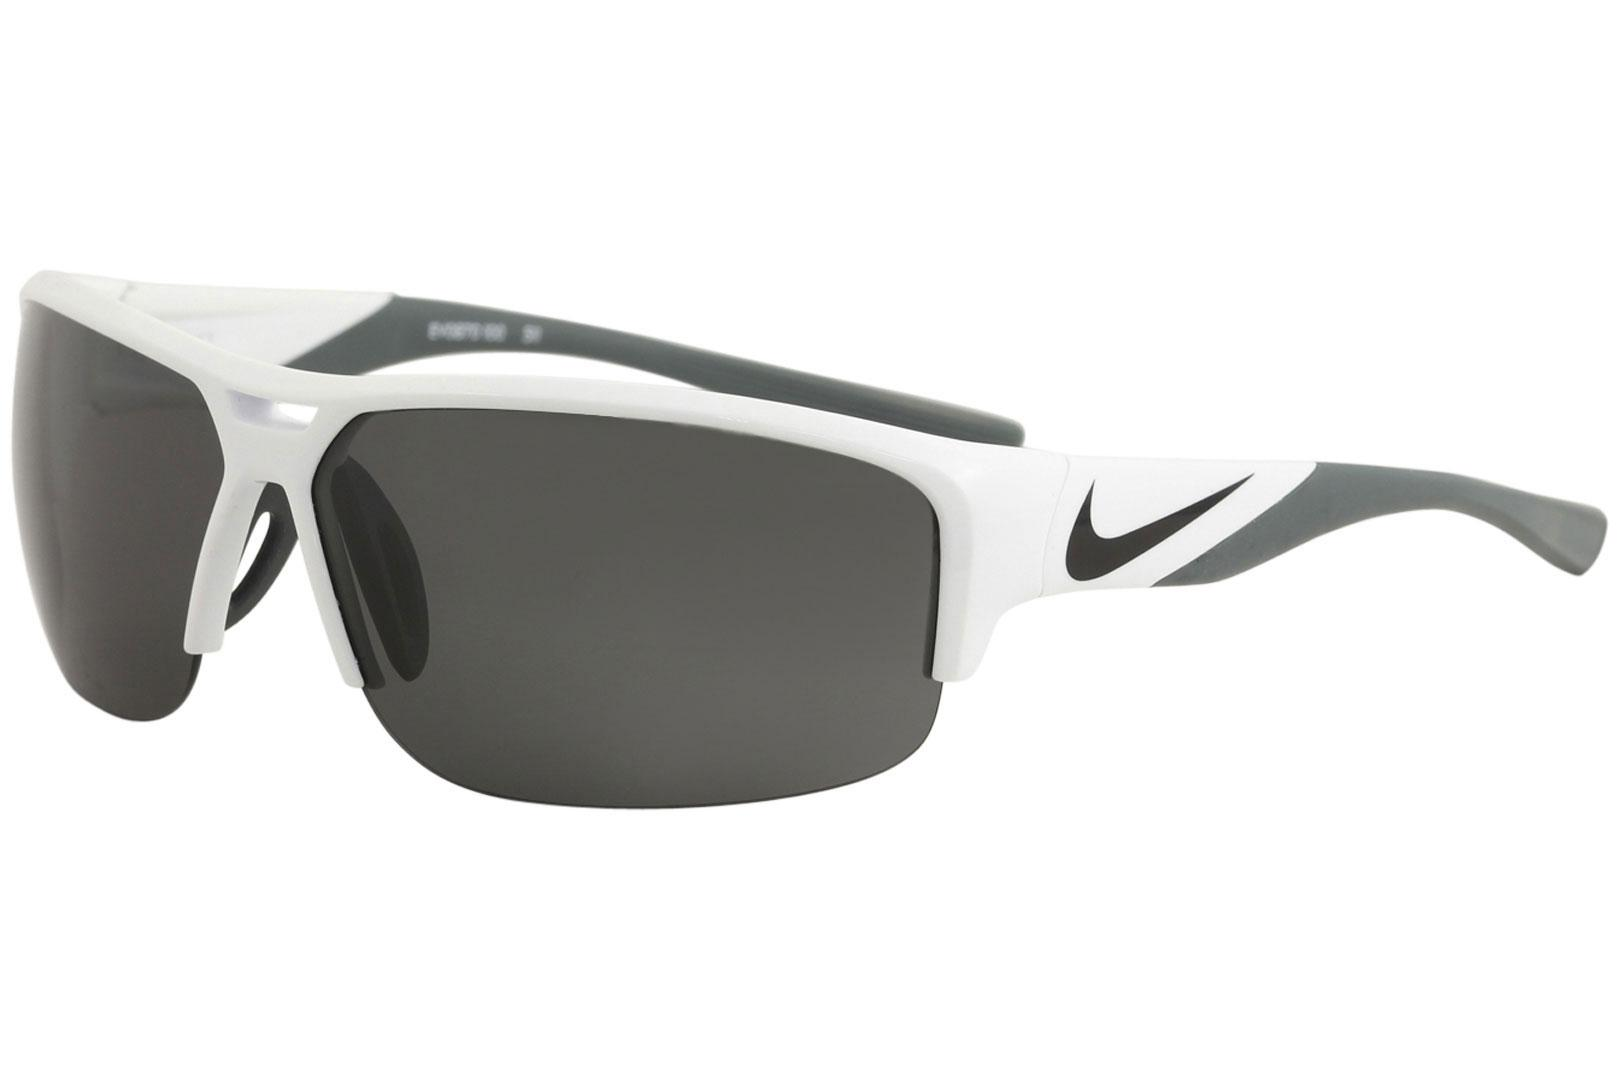 d8441f1f2aedf Nike Men's Golf X2 EV0870 EV/0870 Sport Wrap Sunglasses